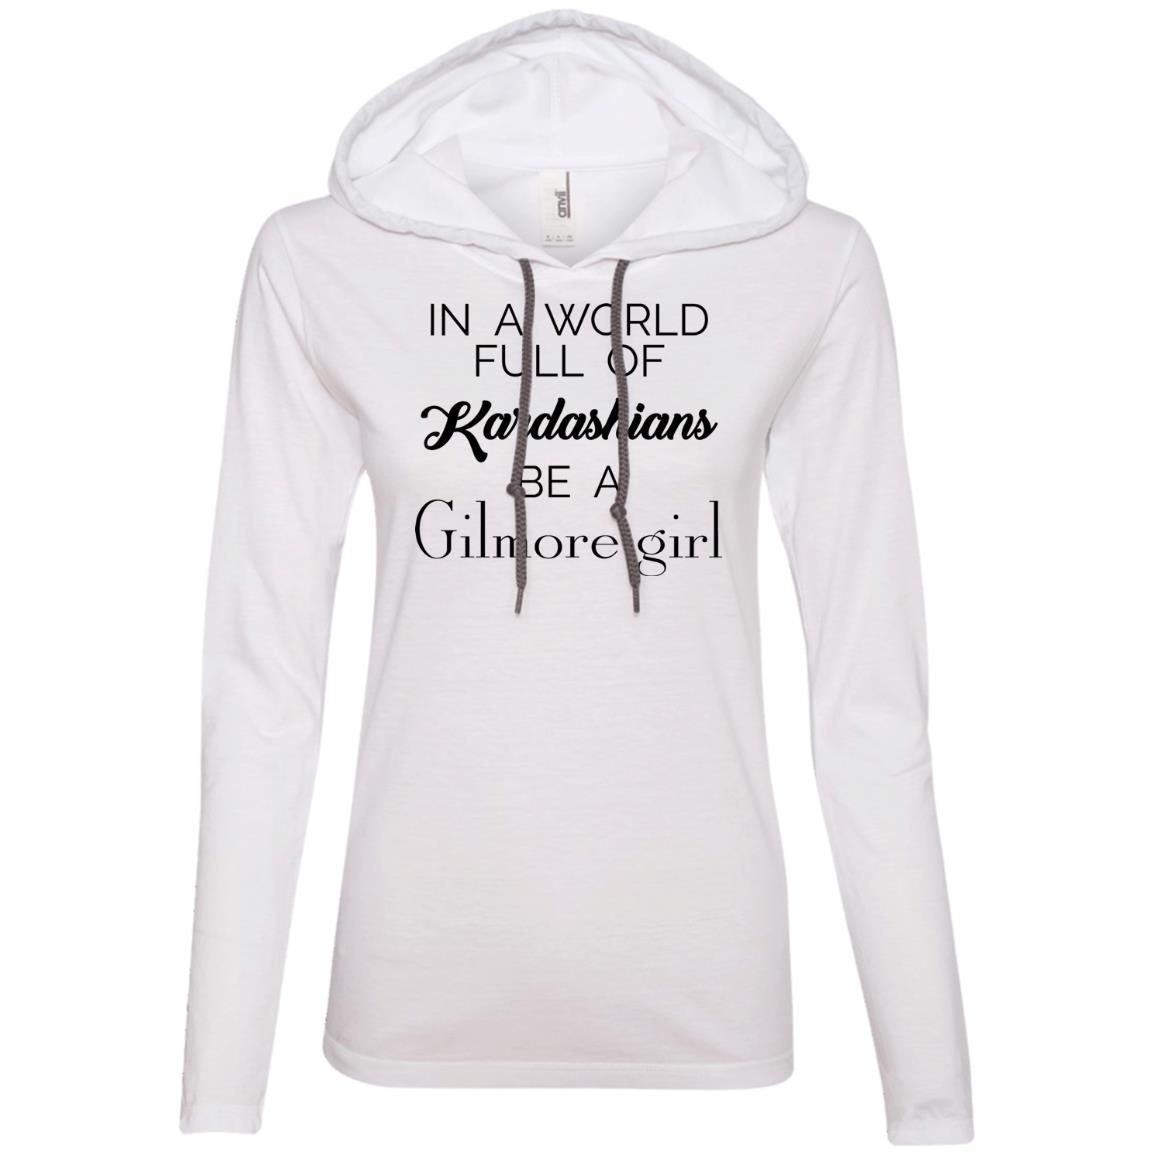 image 5 - In a World full of Kardashians Be a Gilmore Girl shirt